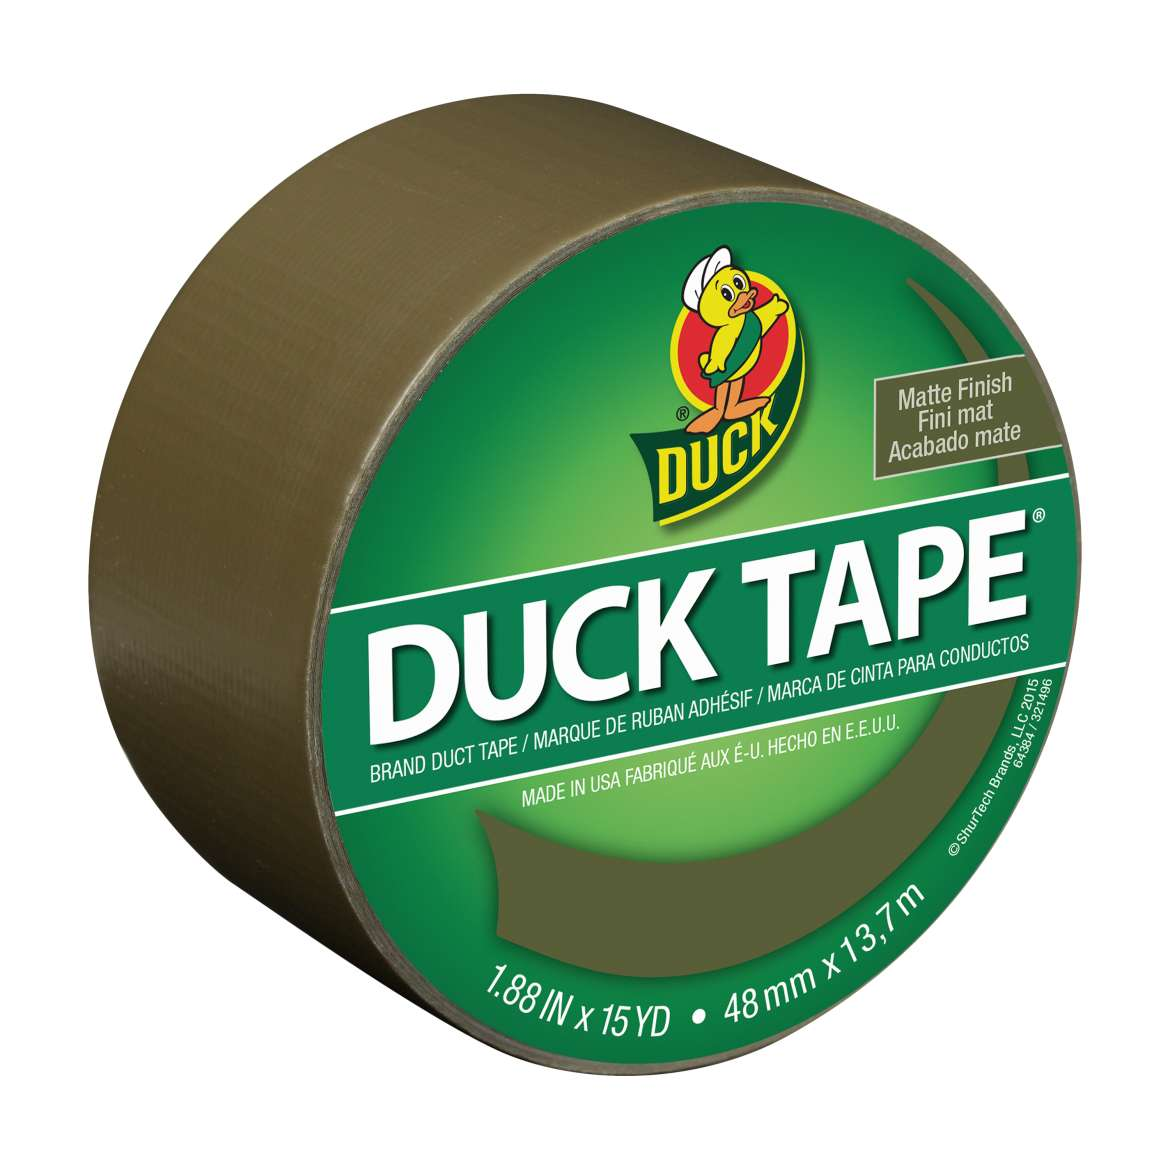 "Color Duck Tape Brand Duct Tape, Olive, 1.88"" x 10 yd"